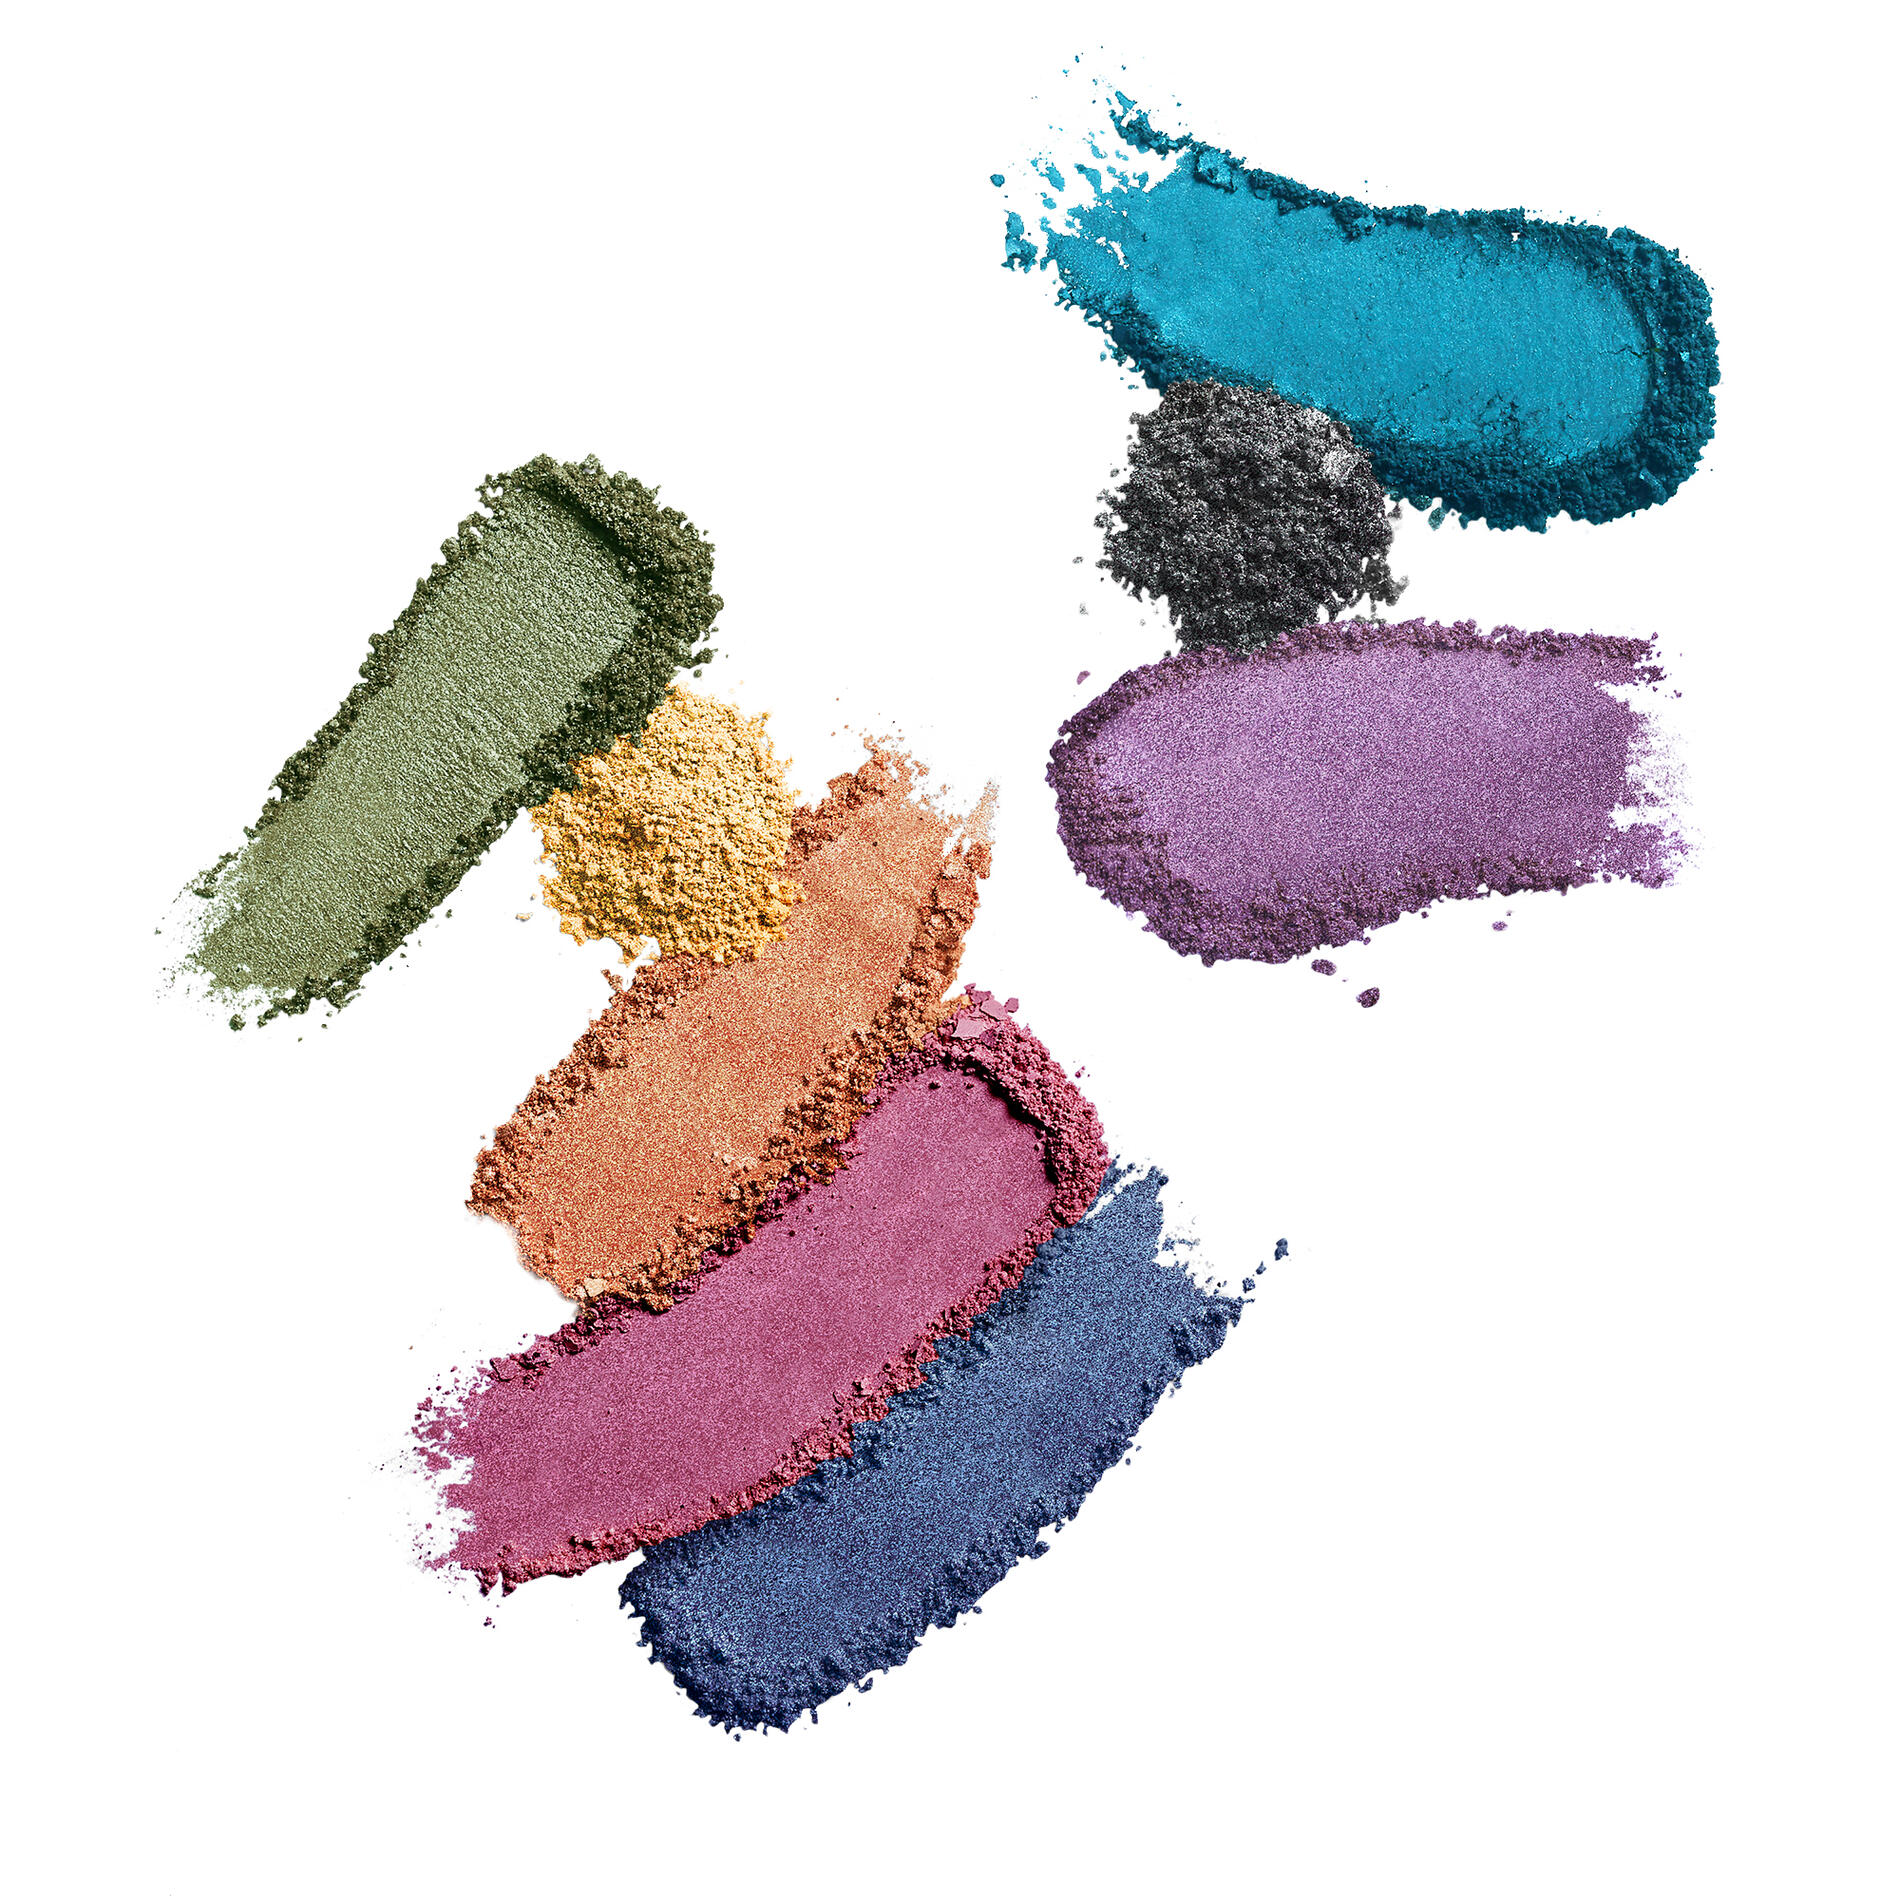 A group of colorful eyeshadows, some in little piles of powder, some smeared showing the texture of the product